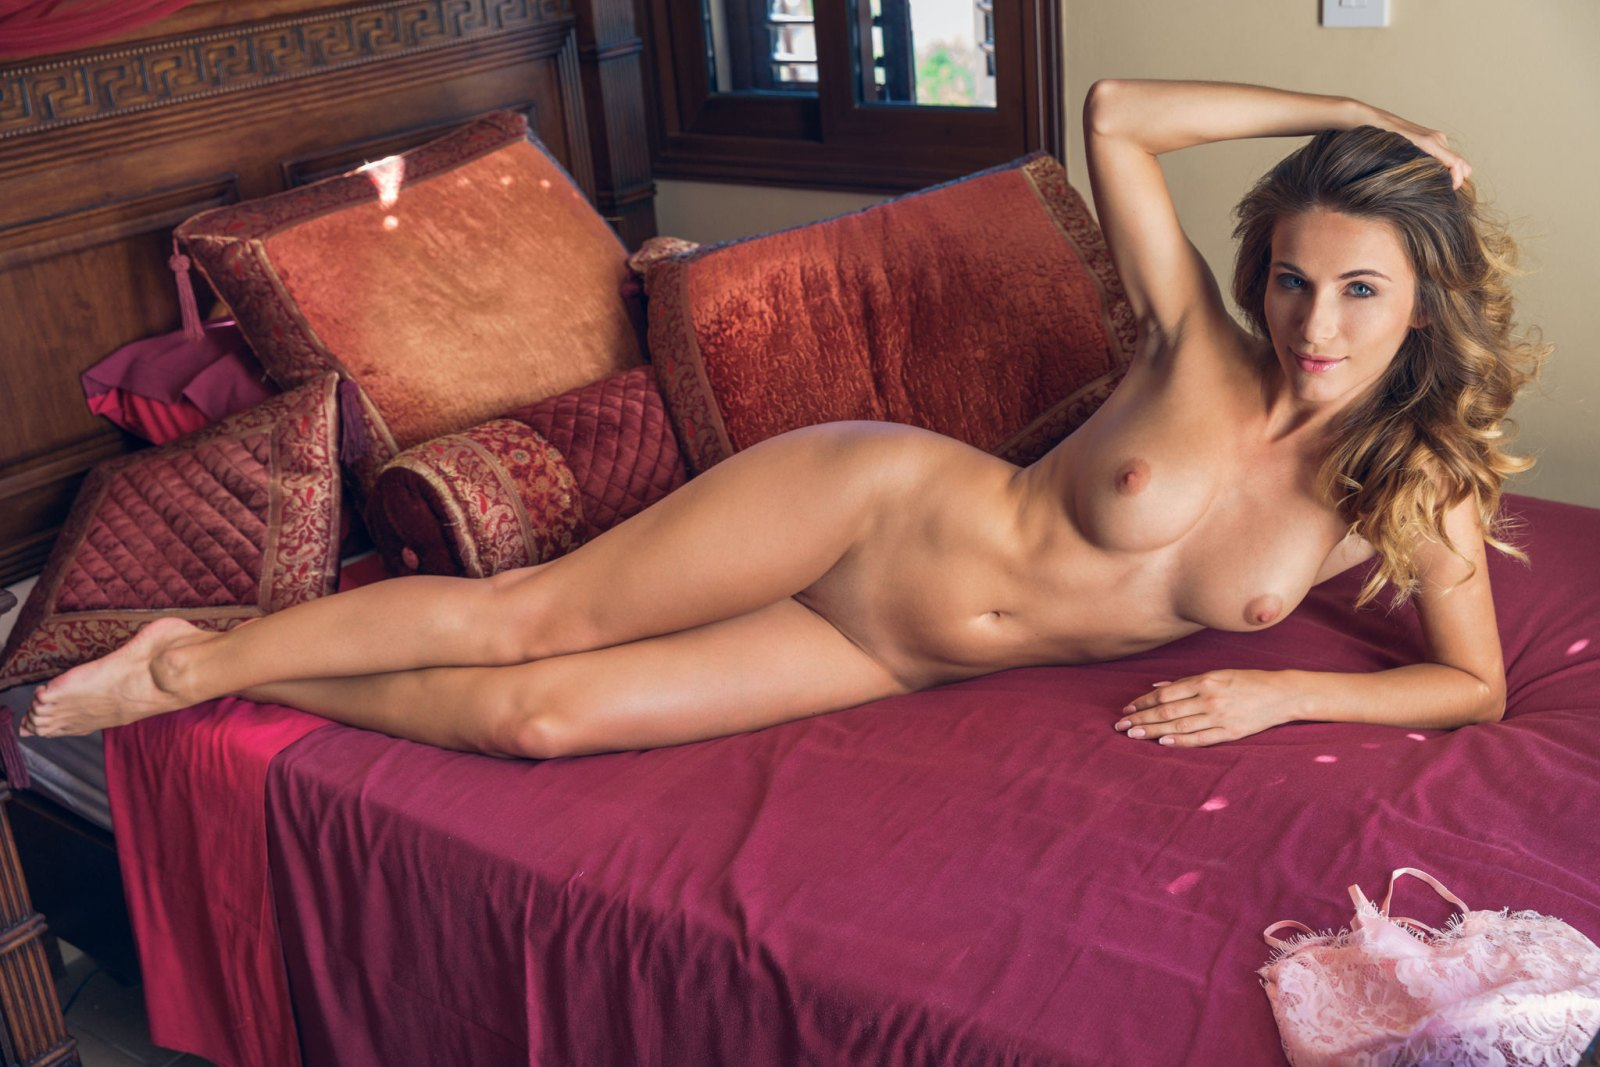 absolutely-hot-chick-seductively-poses-on-the-bed-showing-off-her-perfect-ass-and-tits-14.jpg